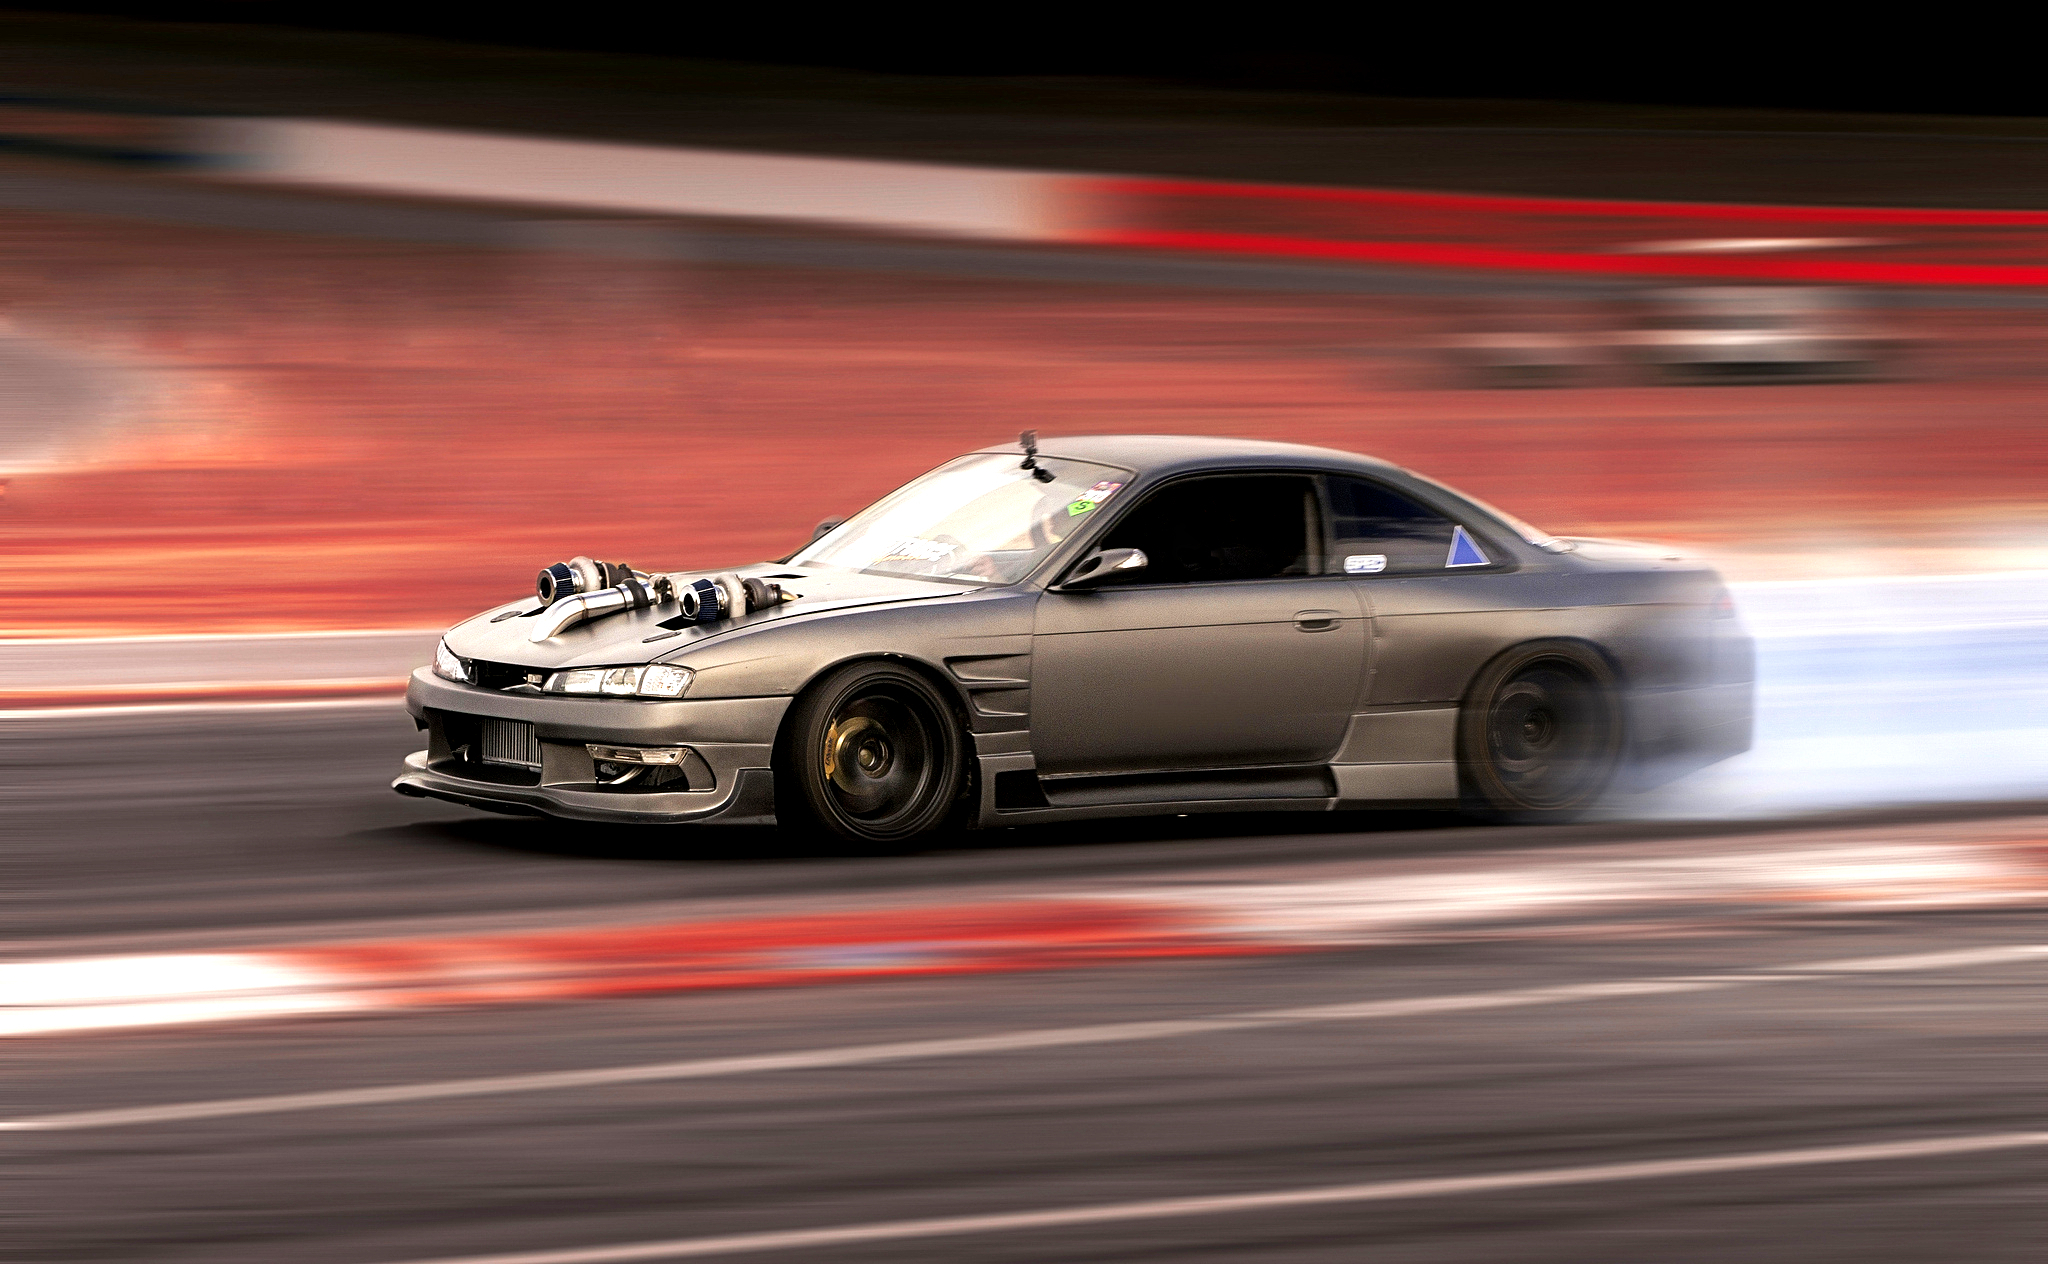 2048x1264 - Nissan Silvia S14 Wallpapers 14